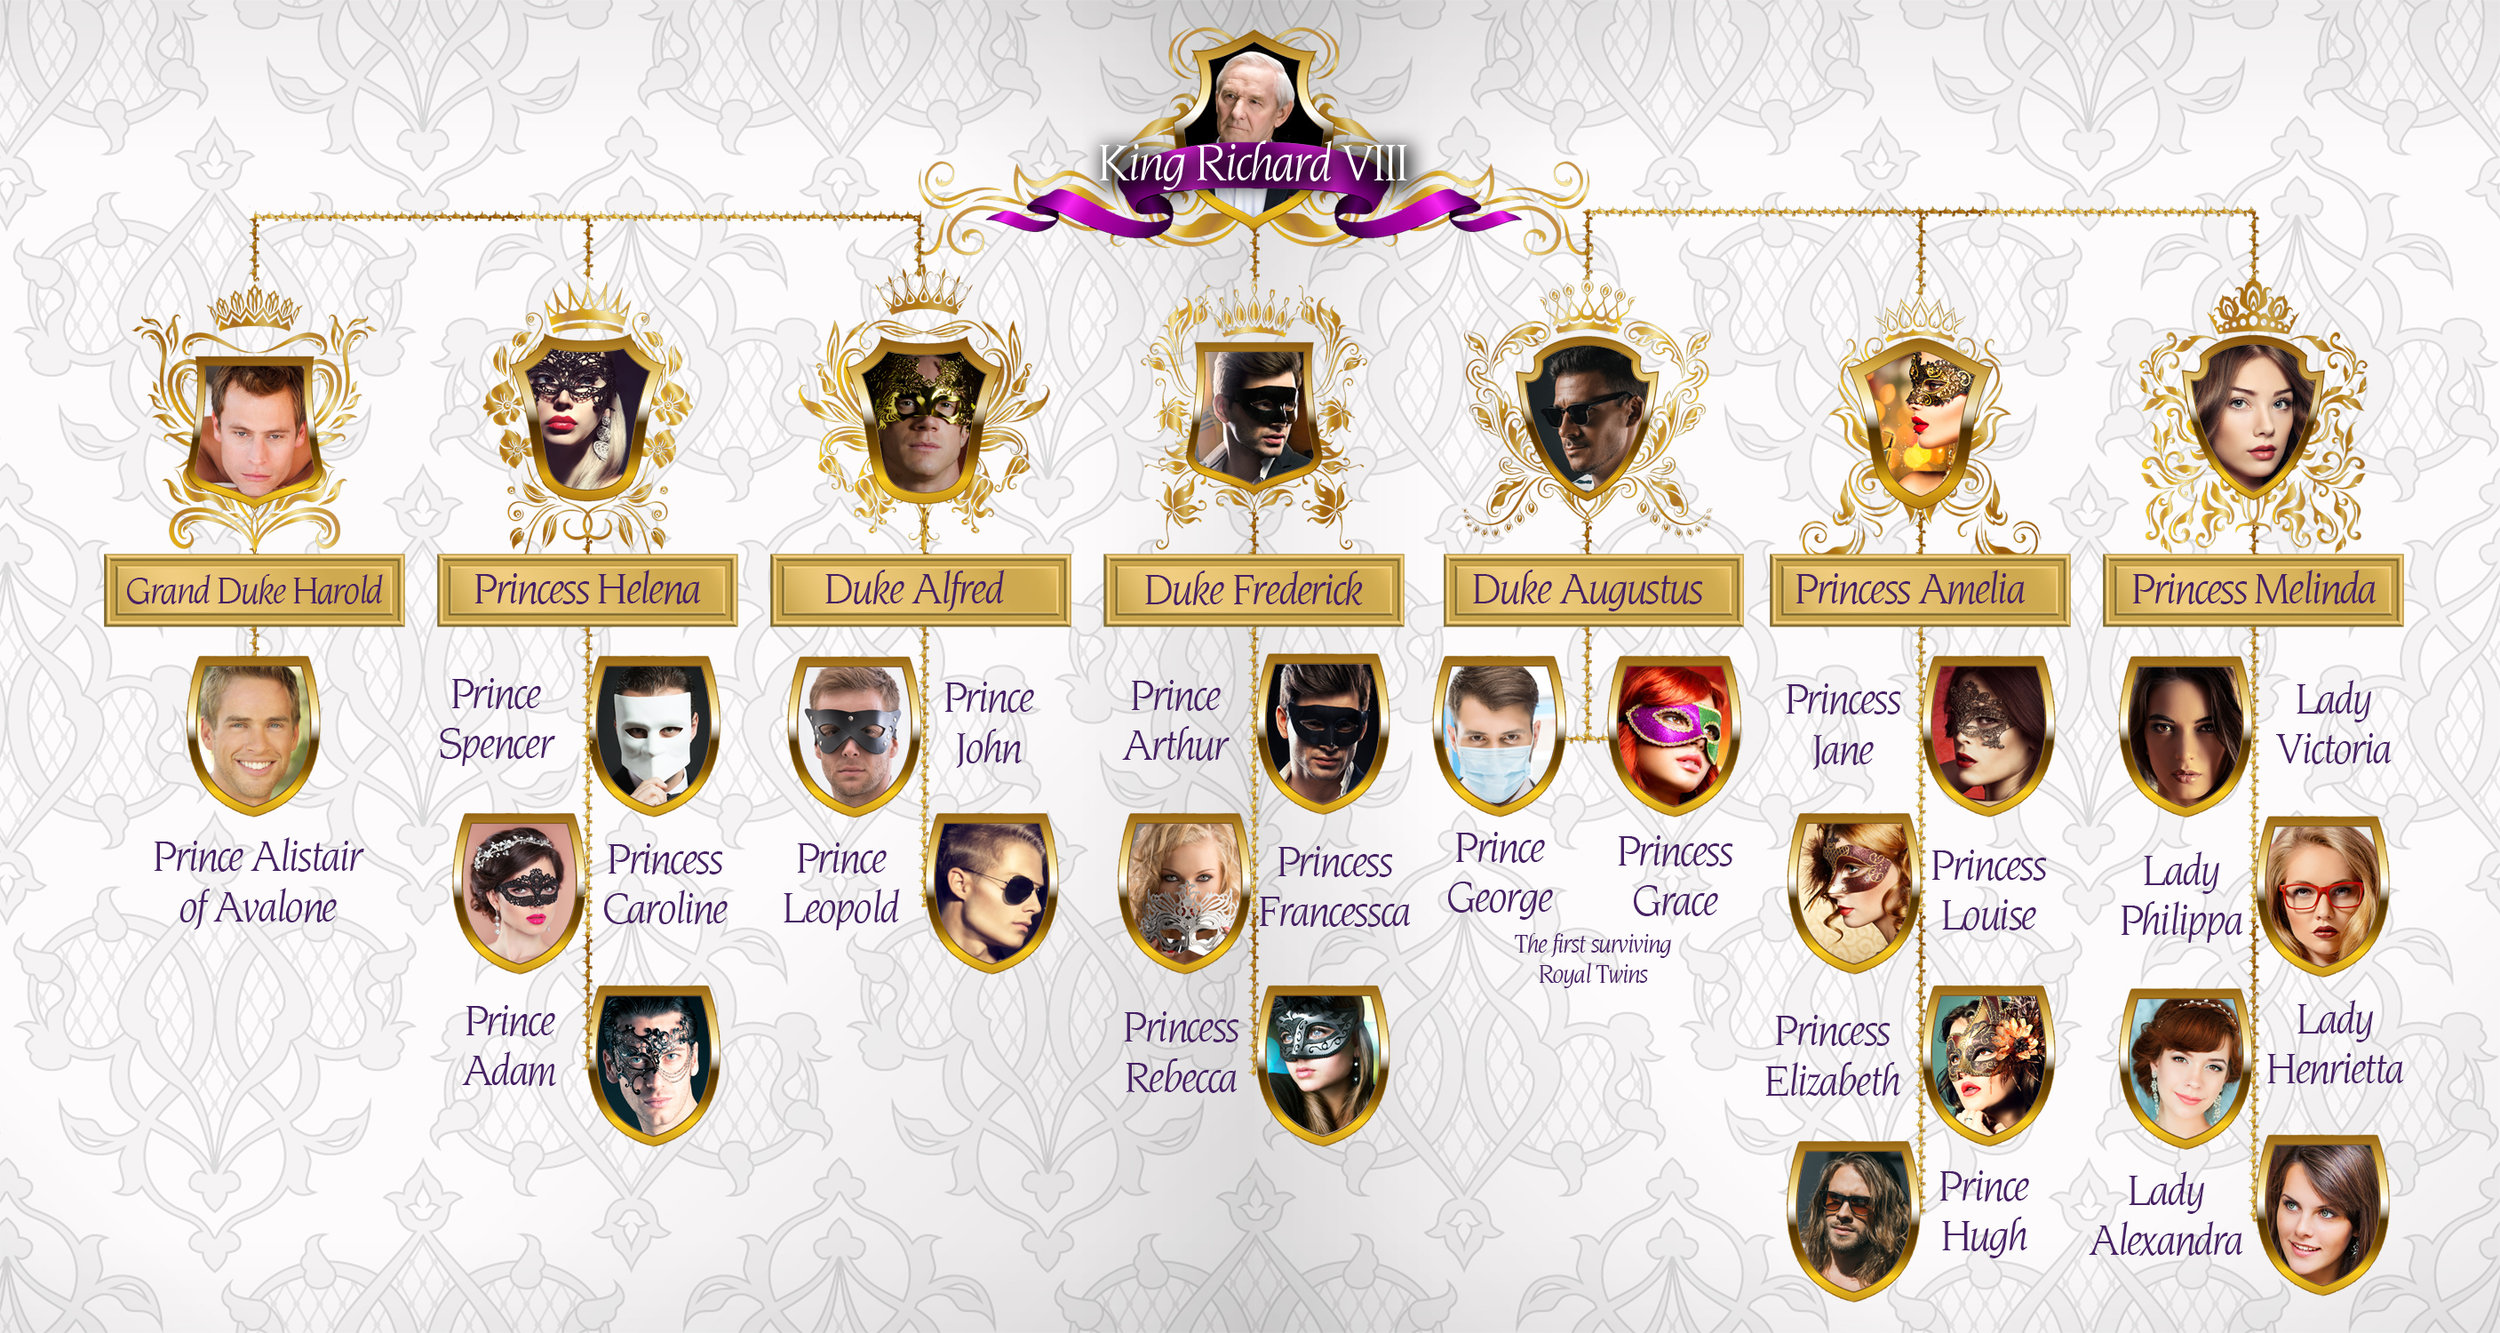 The Family Tree of King Richard VIII, King of Avalone.